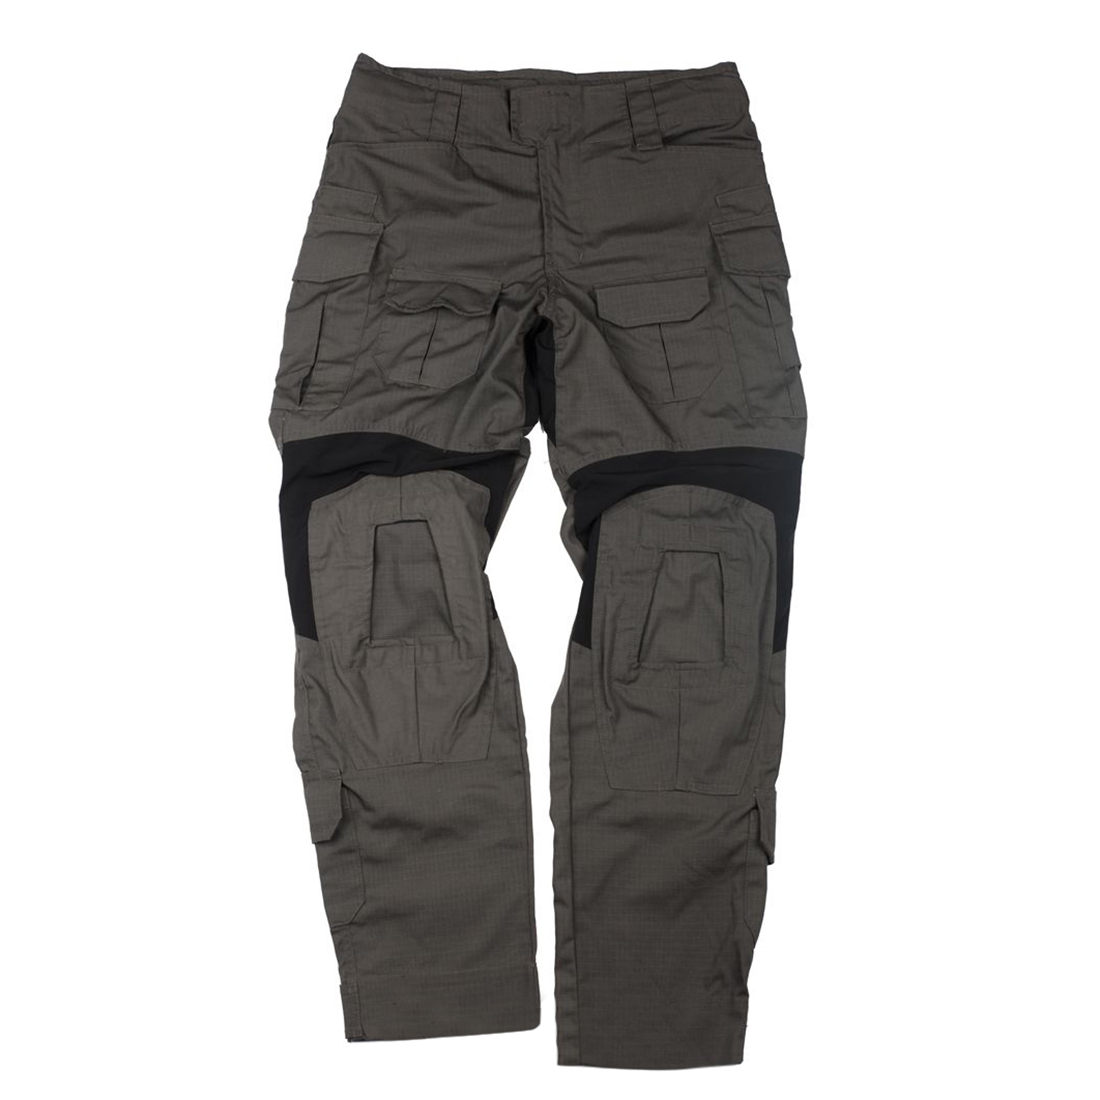 2020 New Release BACRAFT G3 Multifunction Tactical Hunting Pants Outdoor Male Combat Pants For Airsoft- Smoke Green